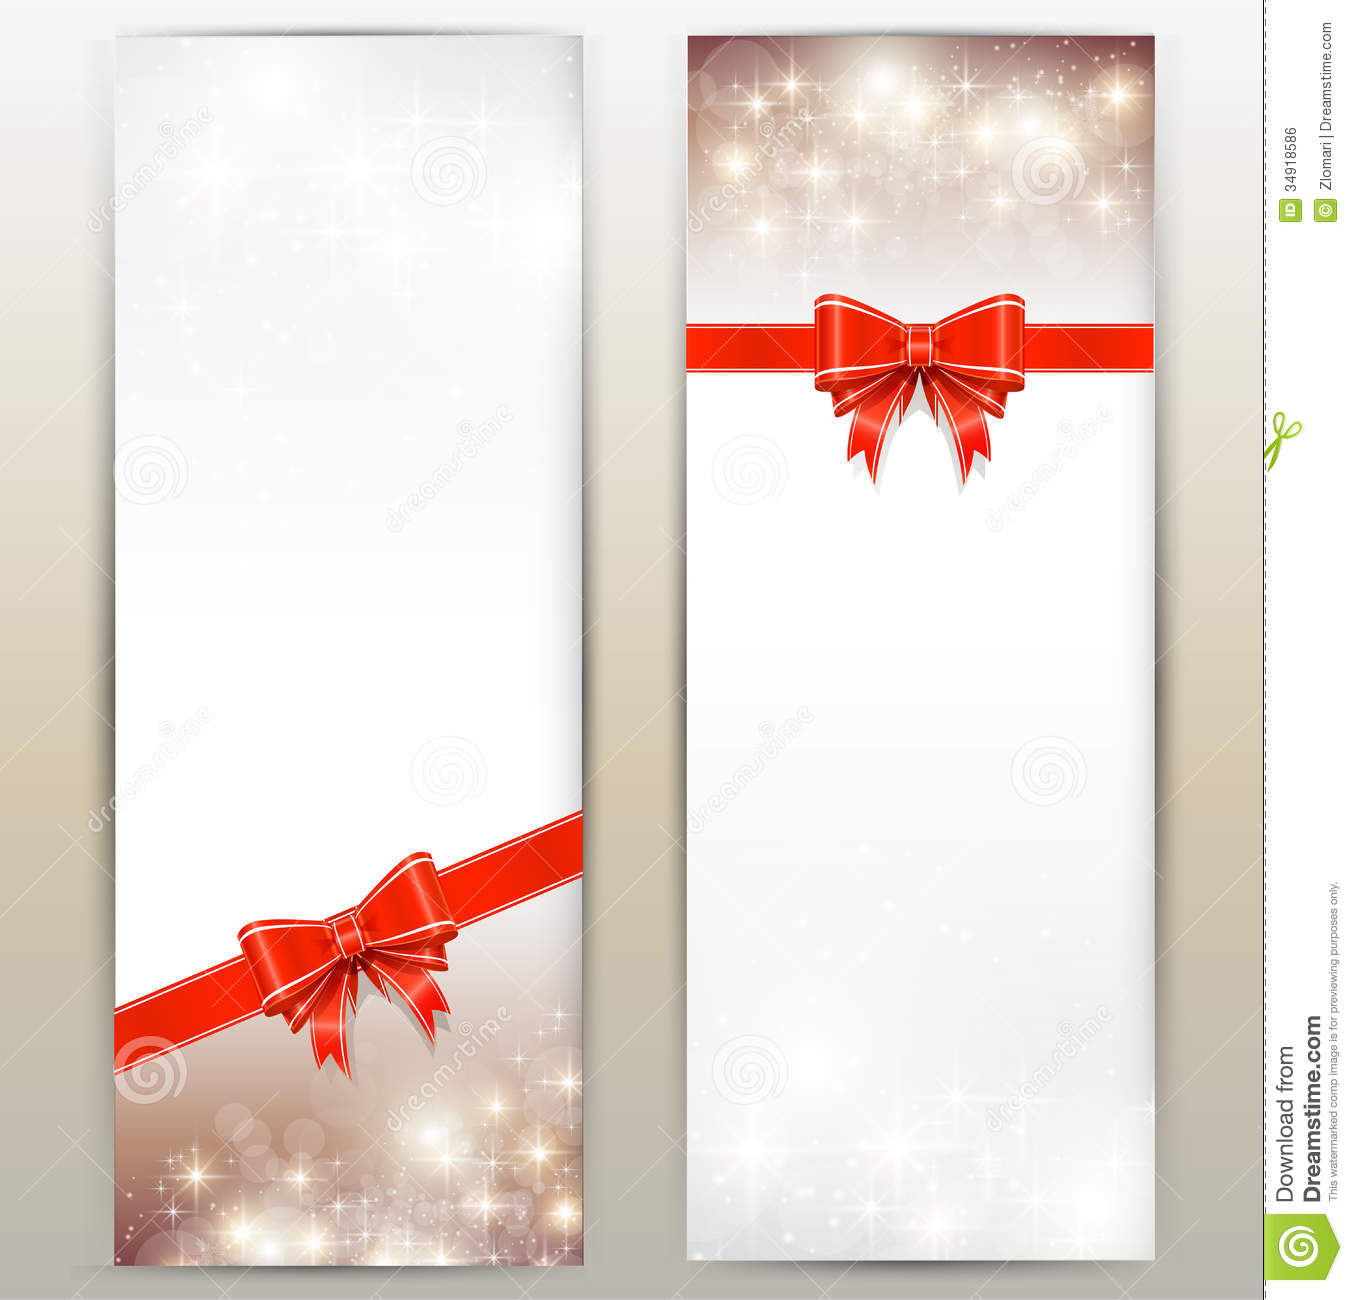 Invitation Design Royalty Free Stock Image - Image: 34918586